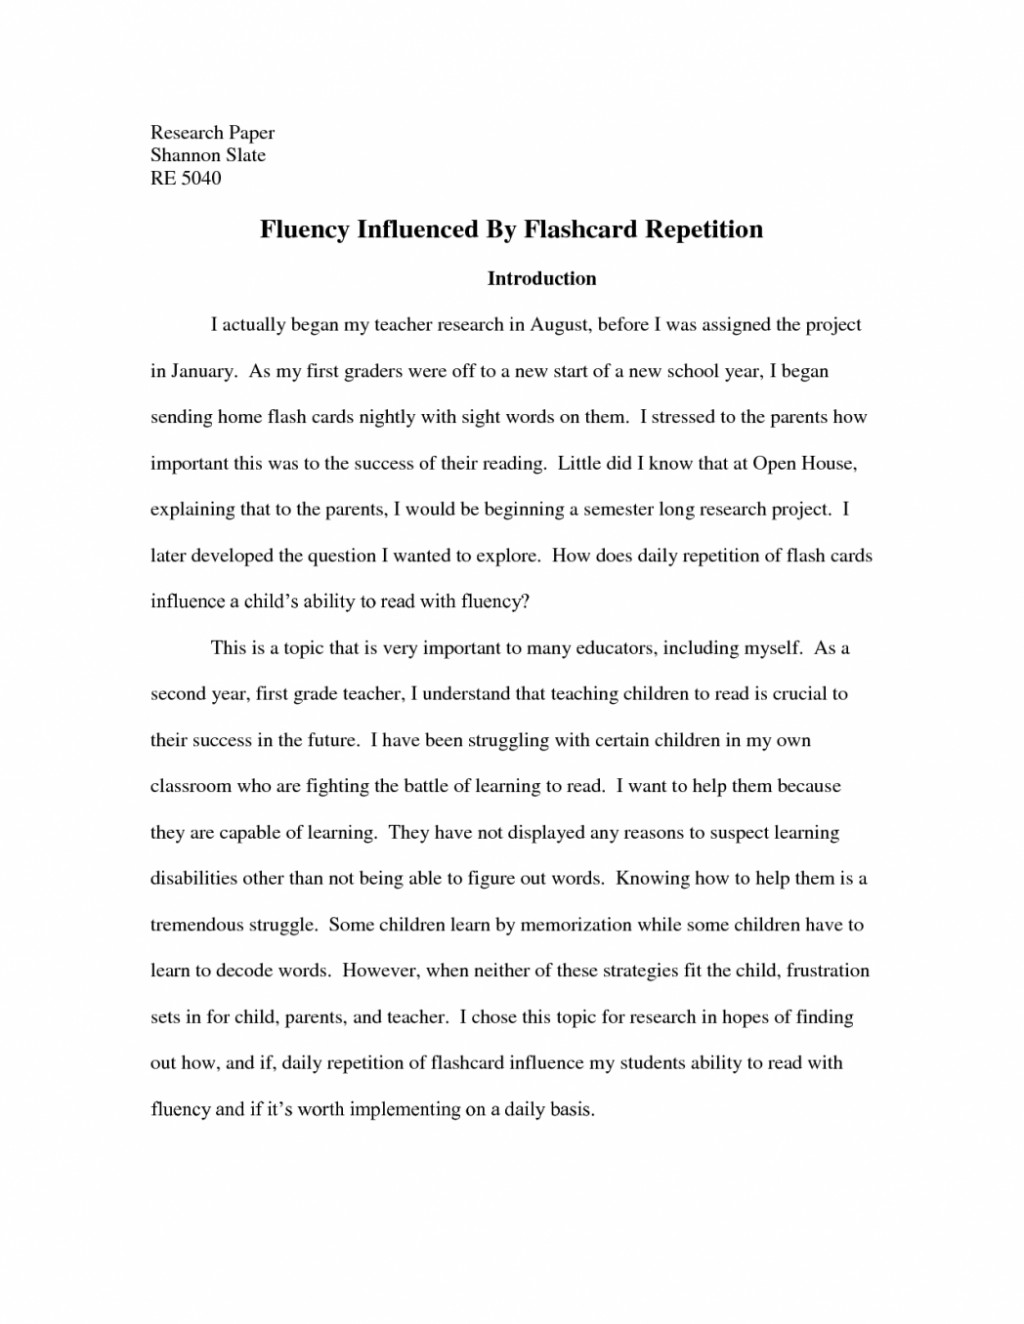 009 Words To Start Off Essay Begin Paragraph In An Argumentative Conclusion Persuasive End The First Body Sentence 1048x1356 Example Excellent How Introduction A Narrative Write Good About Your Life Large